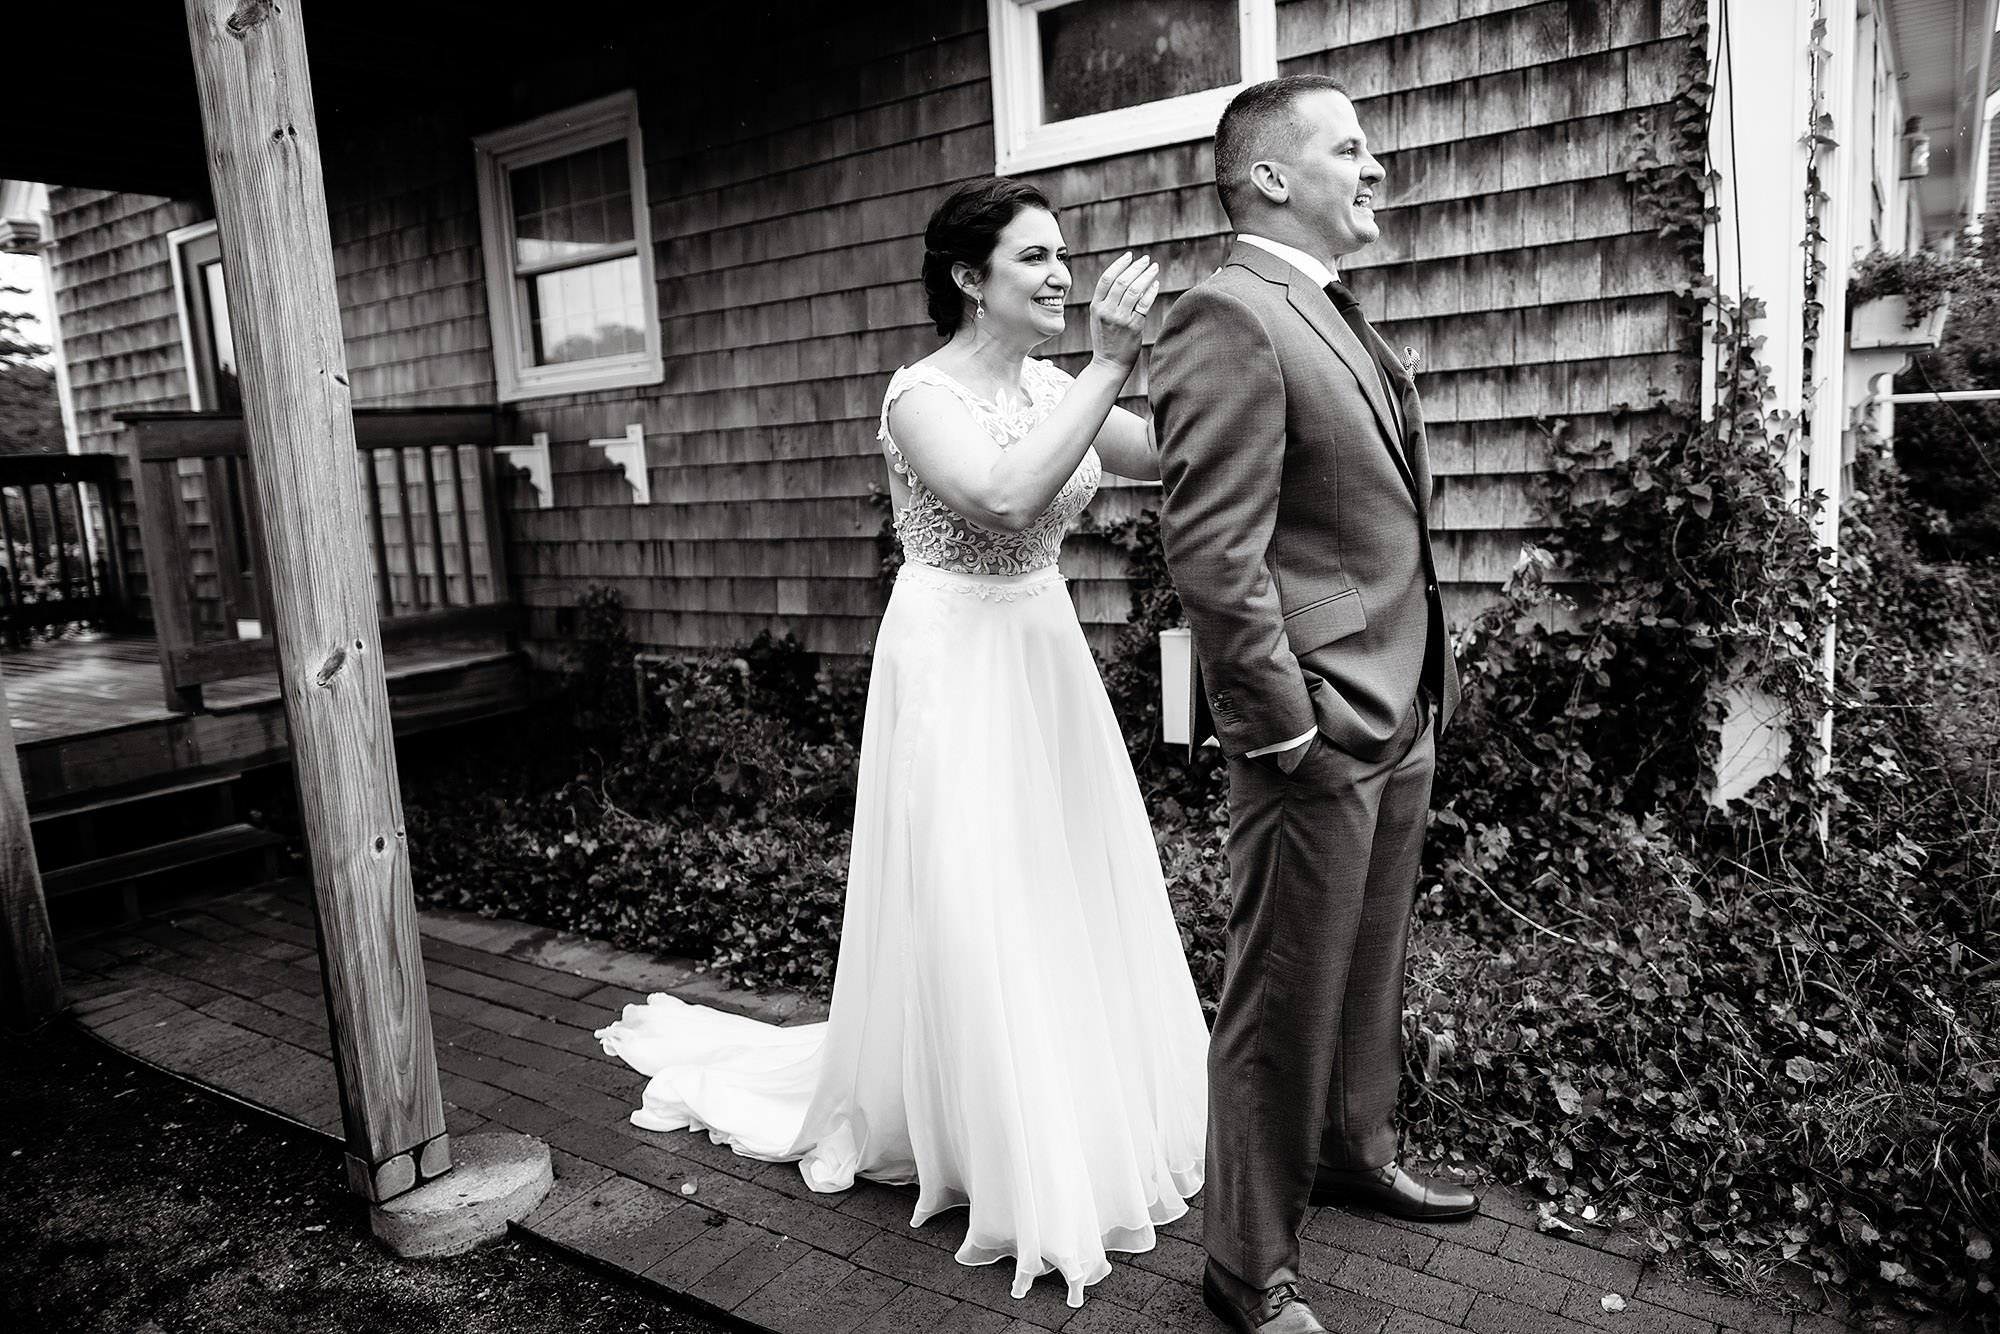 The bride and groom share their first look before the wedding ceremony at Pelham House Resort.